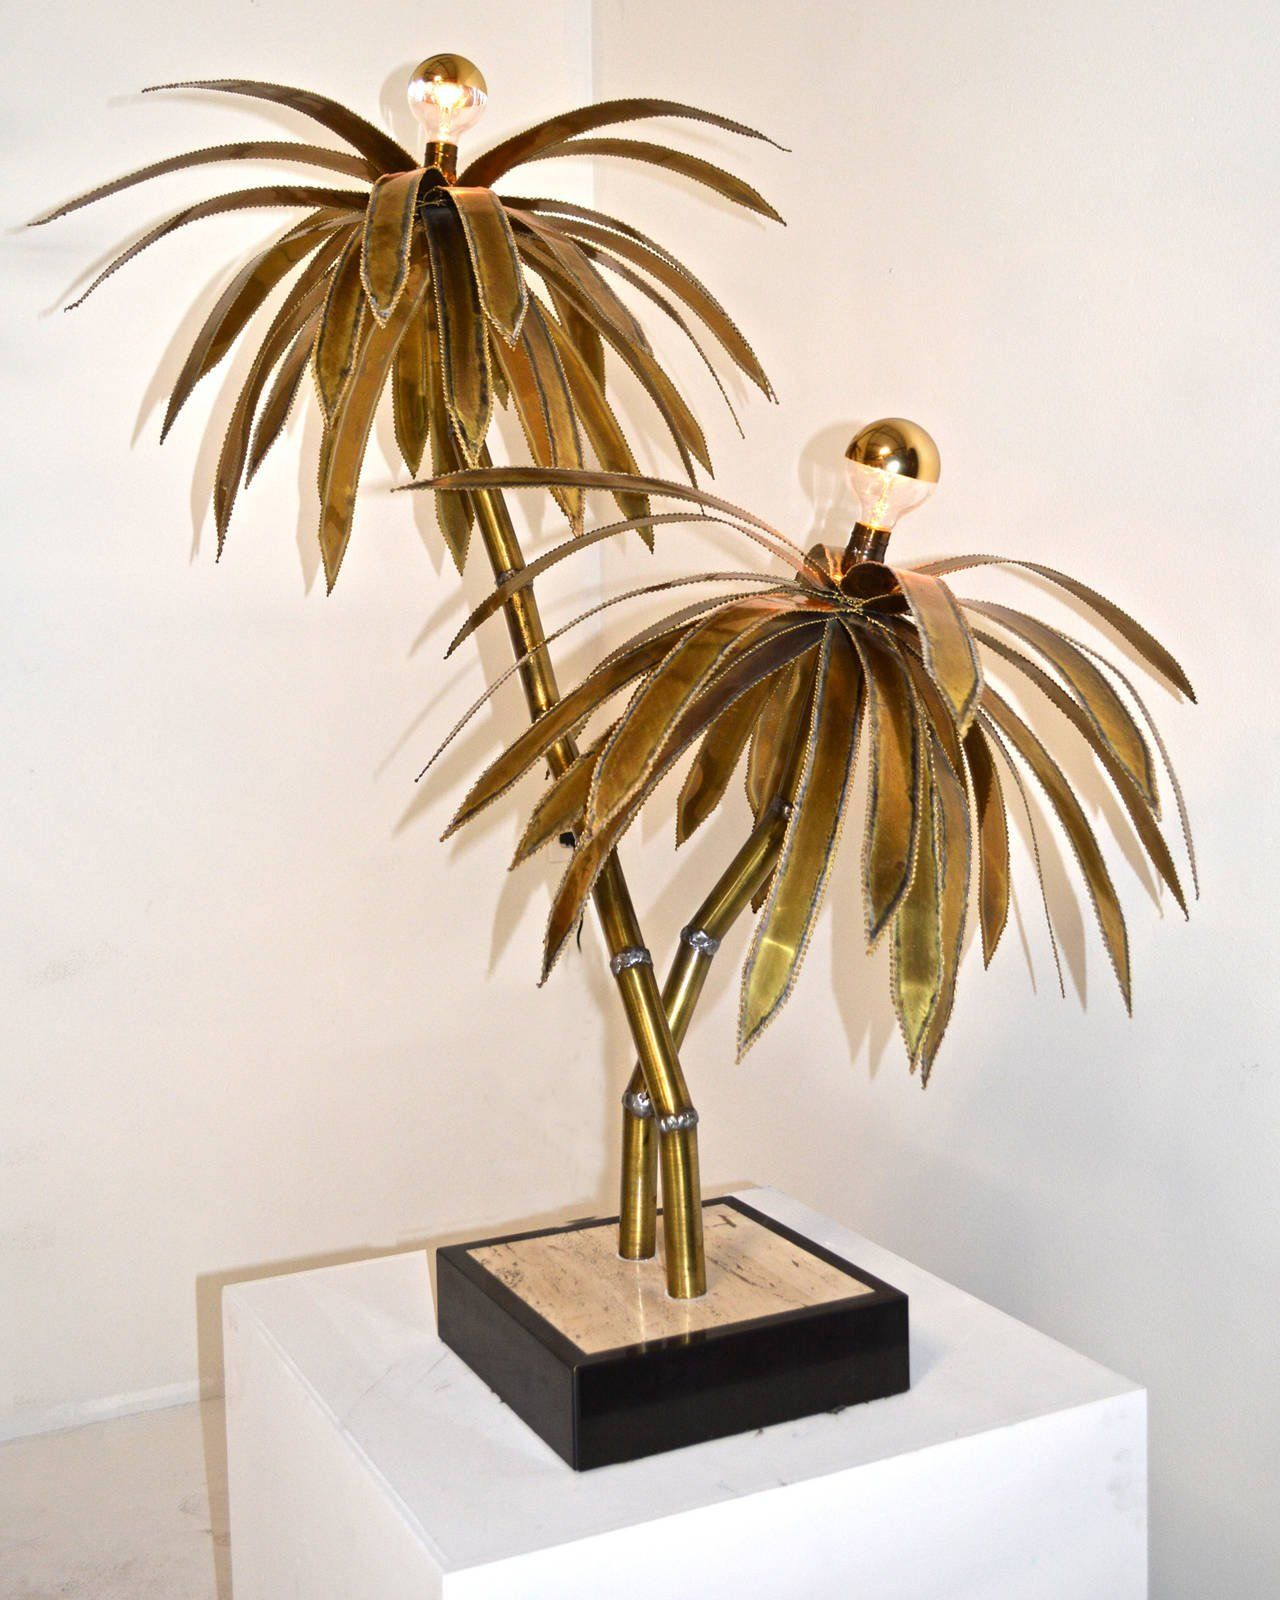 I Just Love The Unique Two Palm Tree Design To This Lamp. My Sister Is  Redoing Her Beach House And Is Really Trying To Go For A Tropical Lamp.